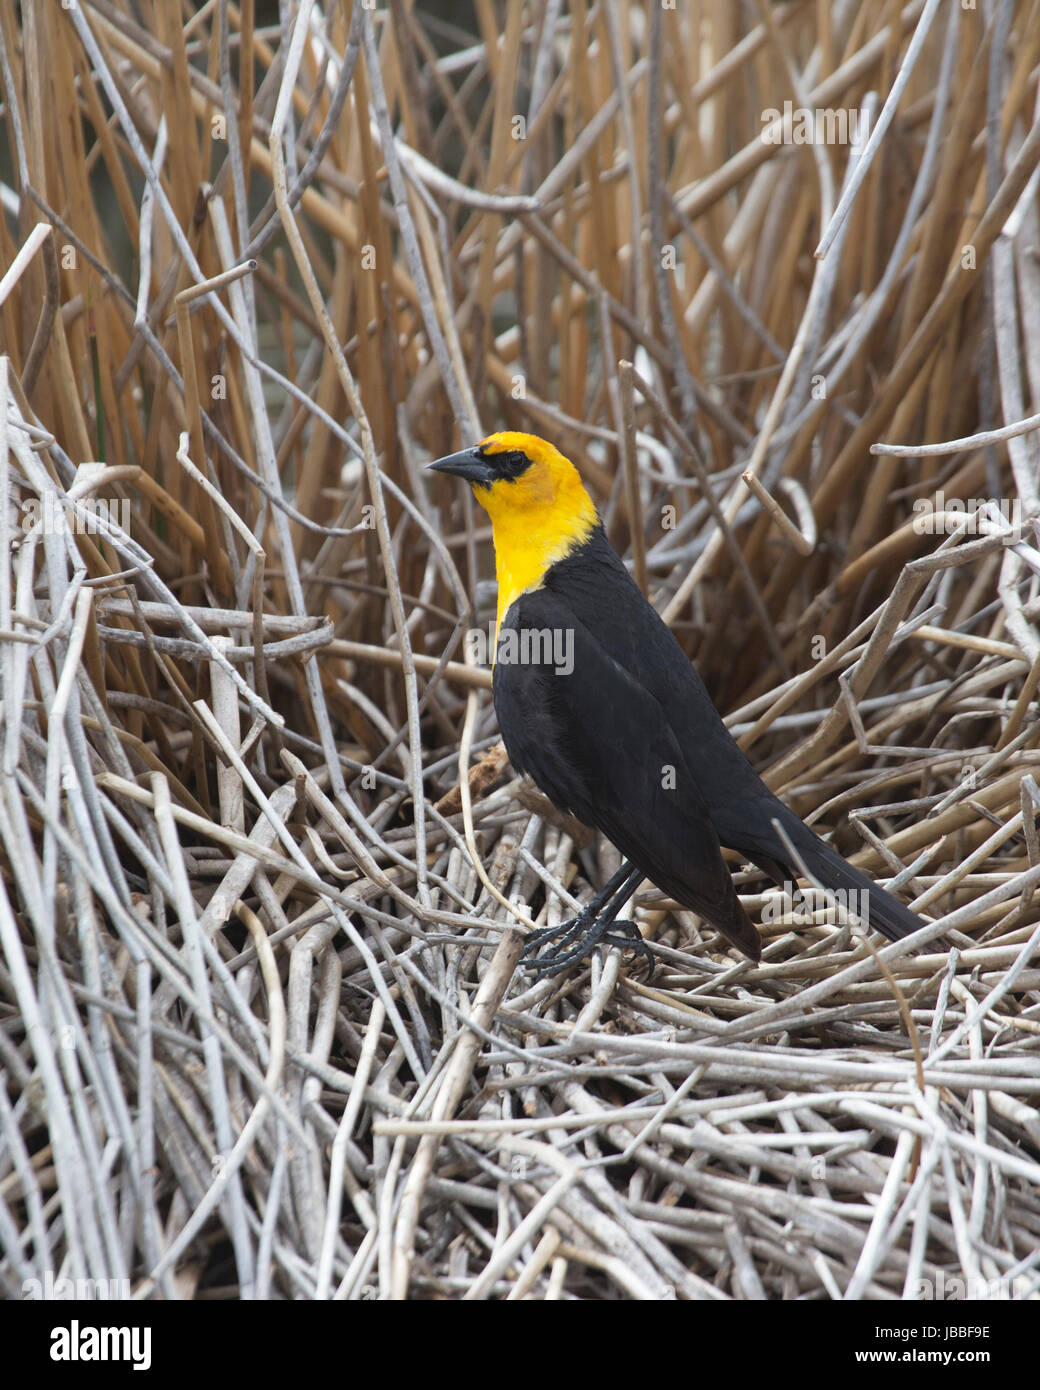 Yellow-headed blackbird male (Xanthocephalus xanthocephalus) perched on reeds in marsh breeding habitat at Frank Stock Photo